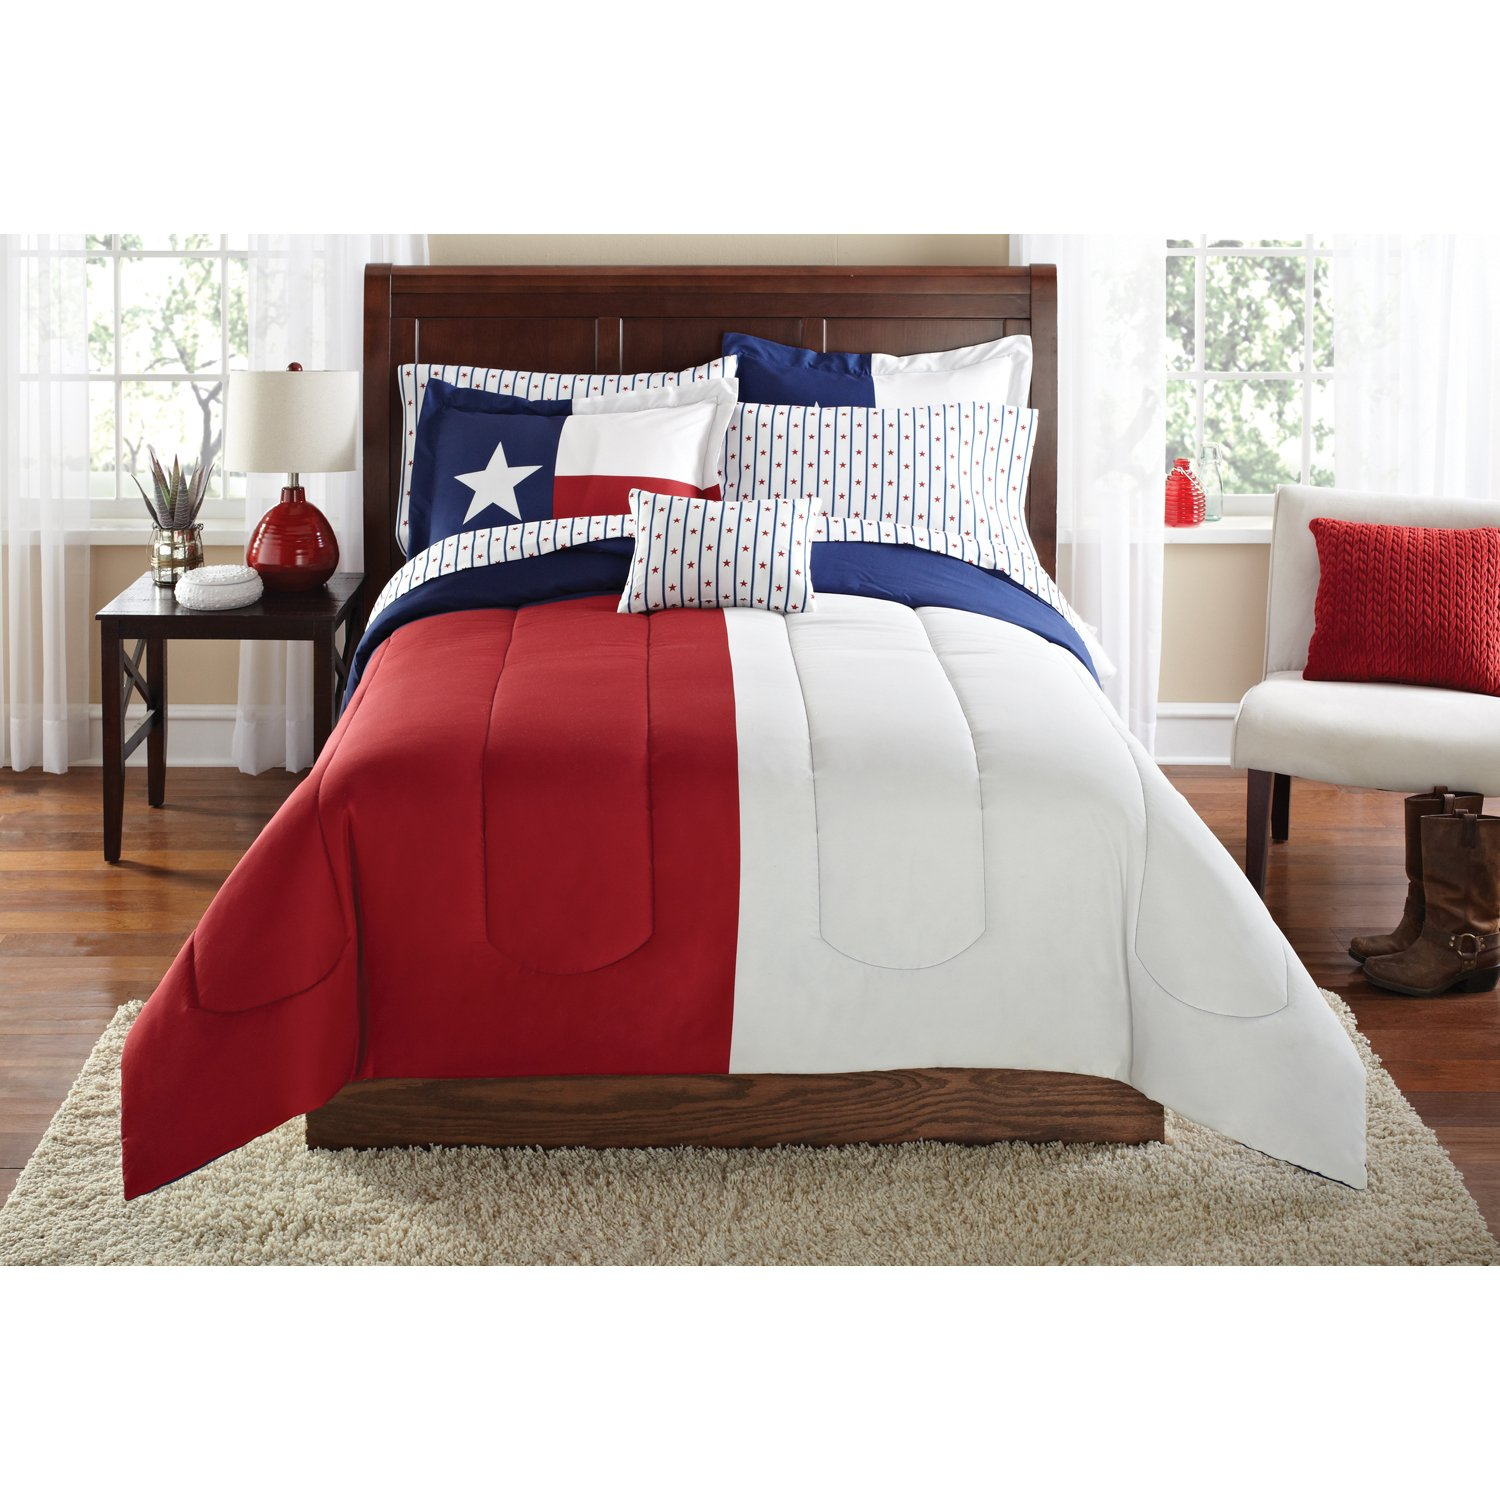 N2 8 Piece Blue Red White American Themed Comforter King Set, Patriotic Texas Bedding Texan Flag Pattern Patriot Colors Country Cowboy Western America, Polyester Microfiber